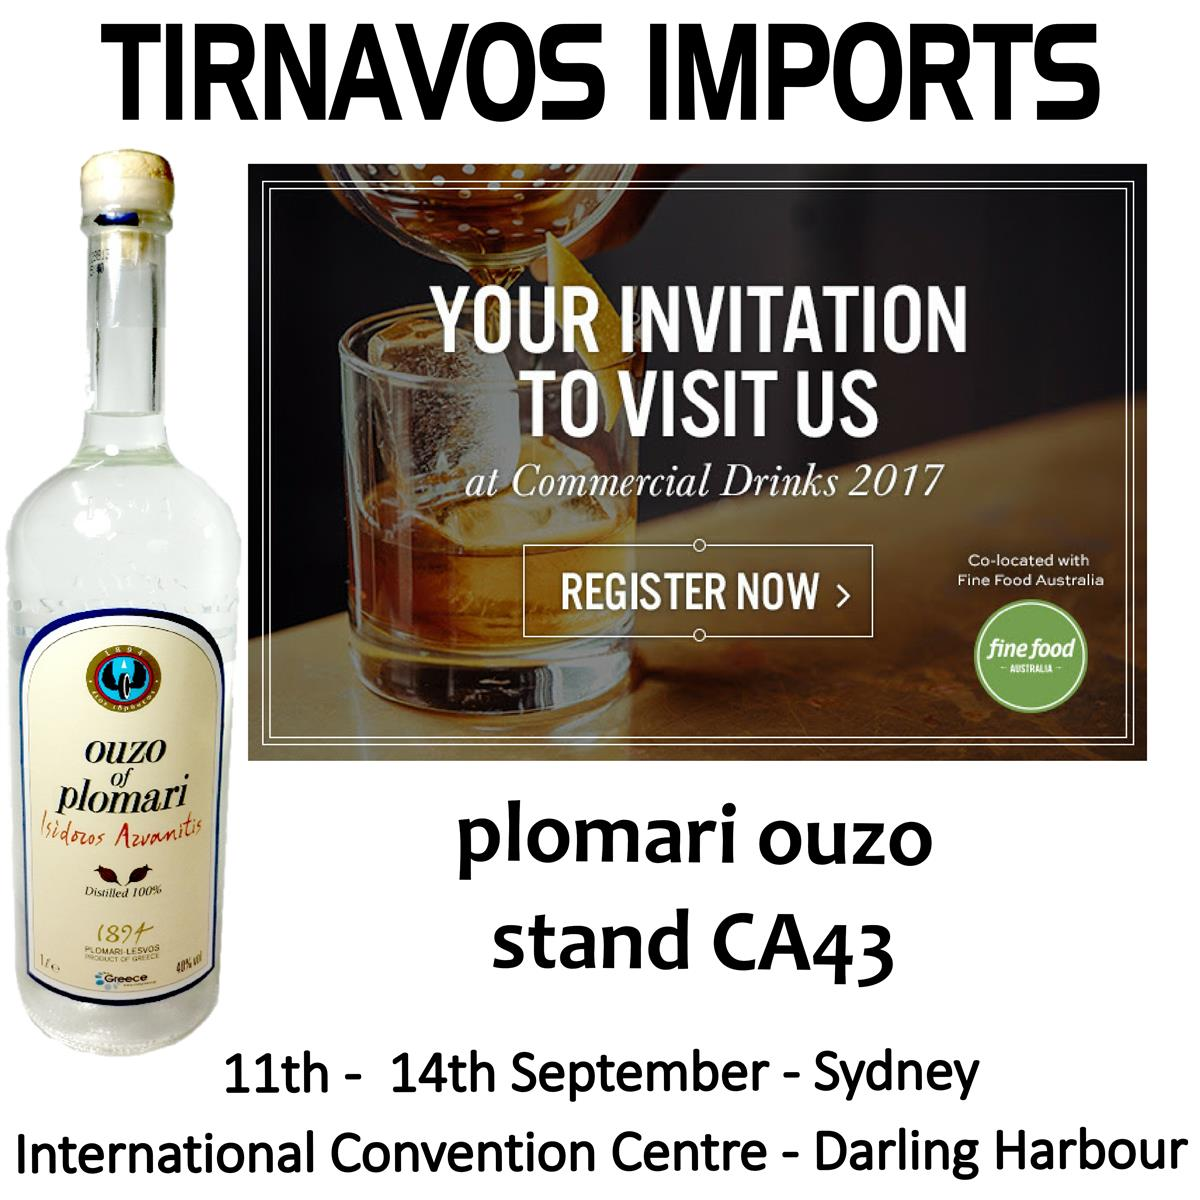 Register Now For Free Entry - Use Promo Code: CHEERS -  http://www. goo.gl/jzijsU  &nbsp;   * Commercial Drinks Fine Food Australia 2017 * #sydney #expo <br>http://pic.twitter.com/jP1BOz1rHR